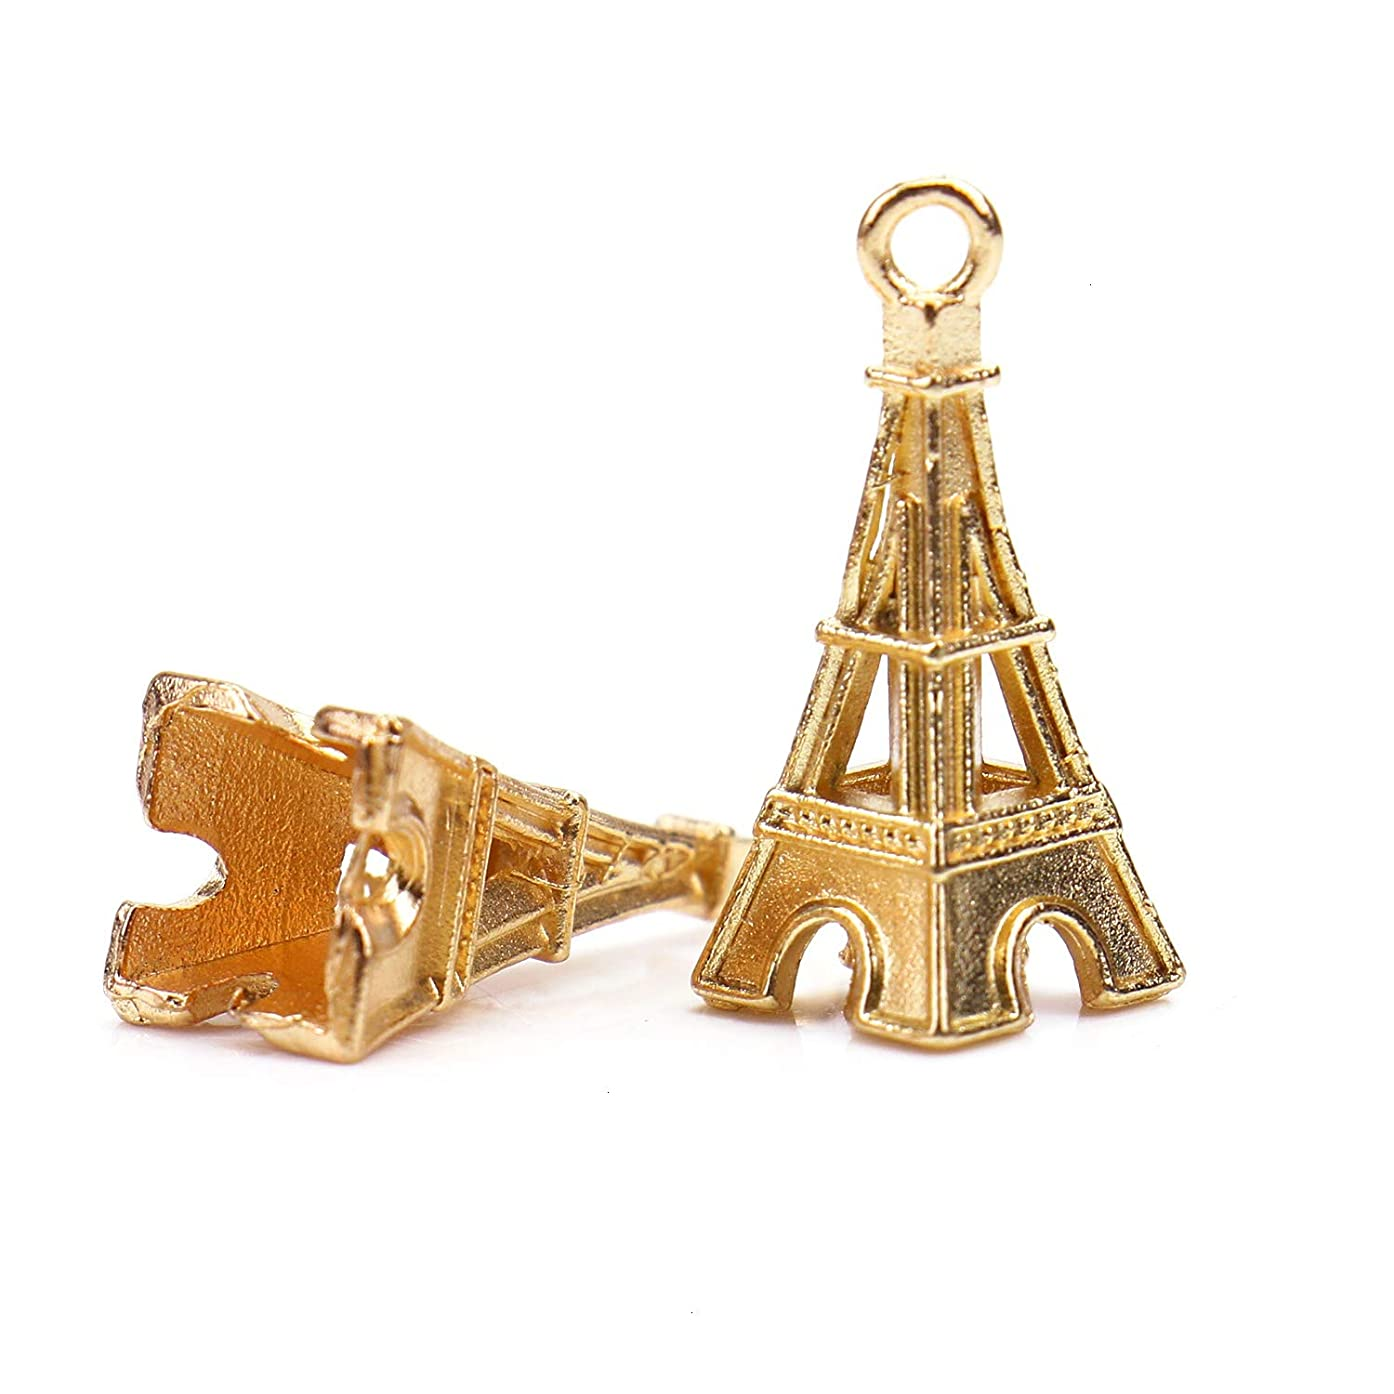 Monrocco 30 Pcs Alloy 3D Eiffel Tower Charms Pendant Metal Beads Charms Jewelry Findings for DIY Crafts Jewelry Making